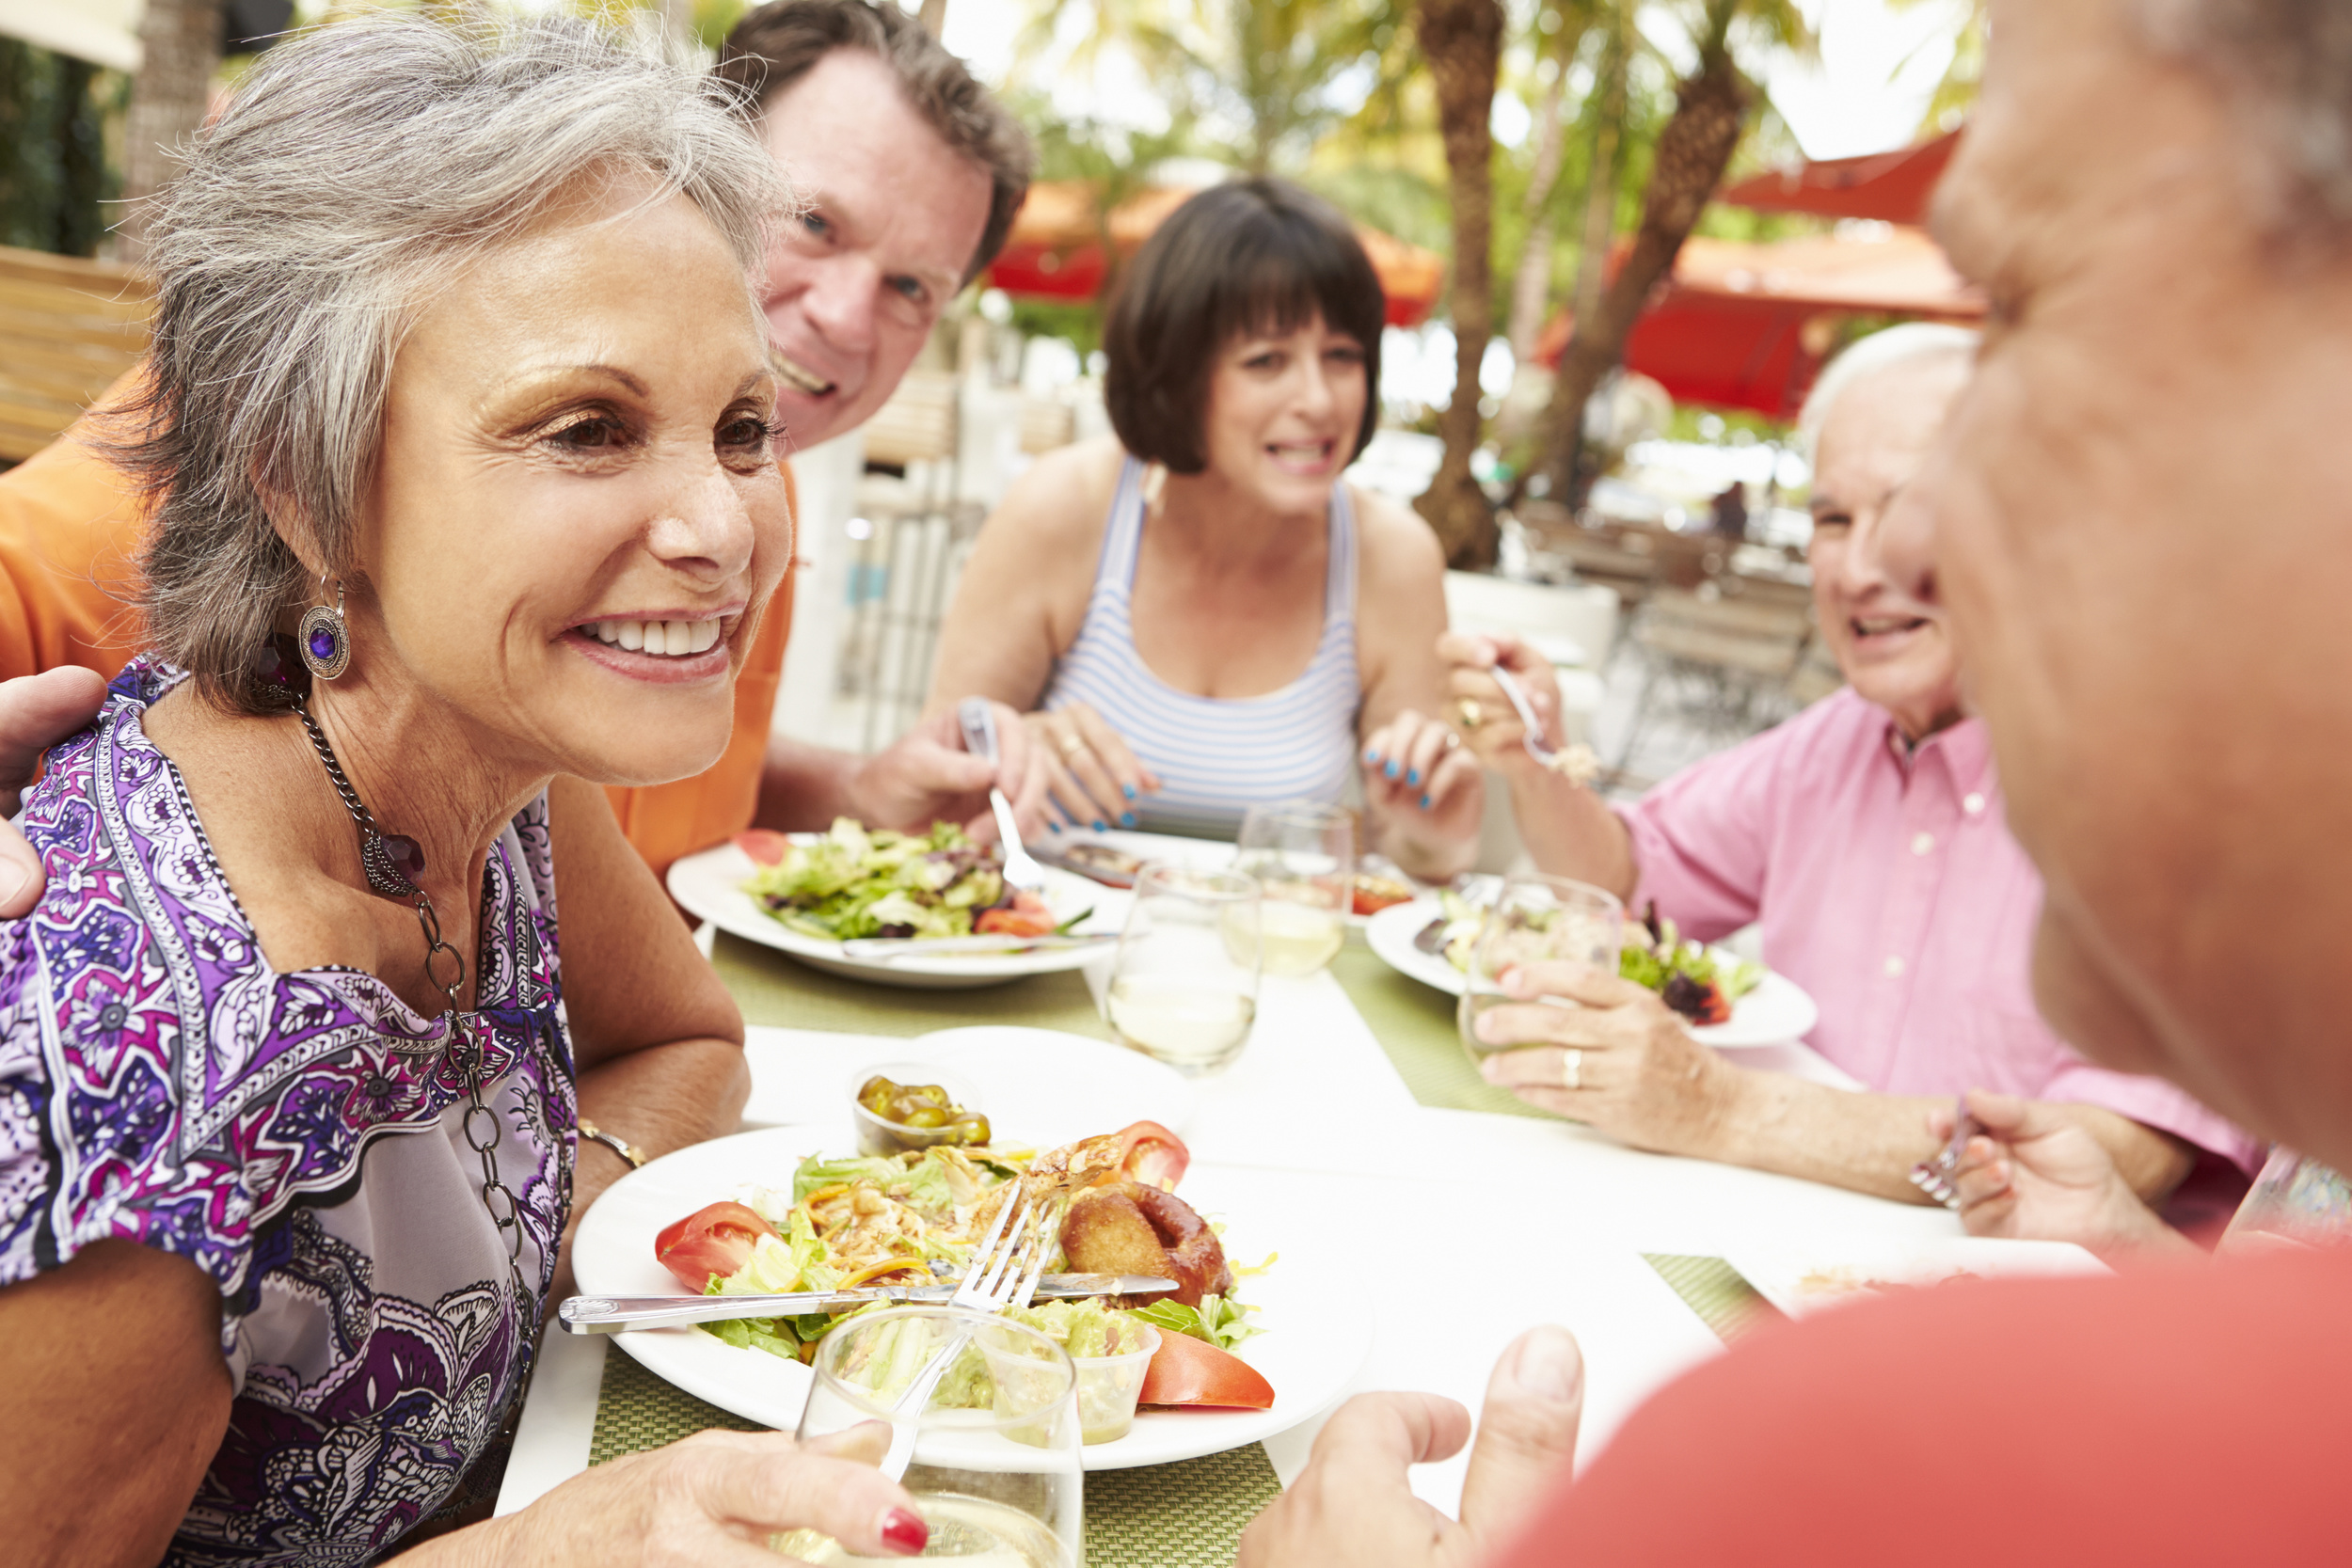 For the 50+ age group 3rd Tuesday of every month Meet at various restaurants with the occasional potluck at the church.